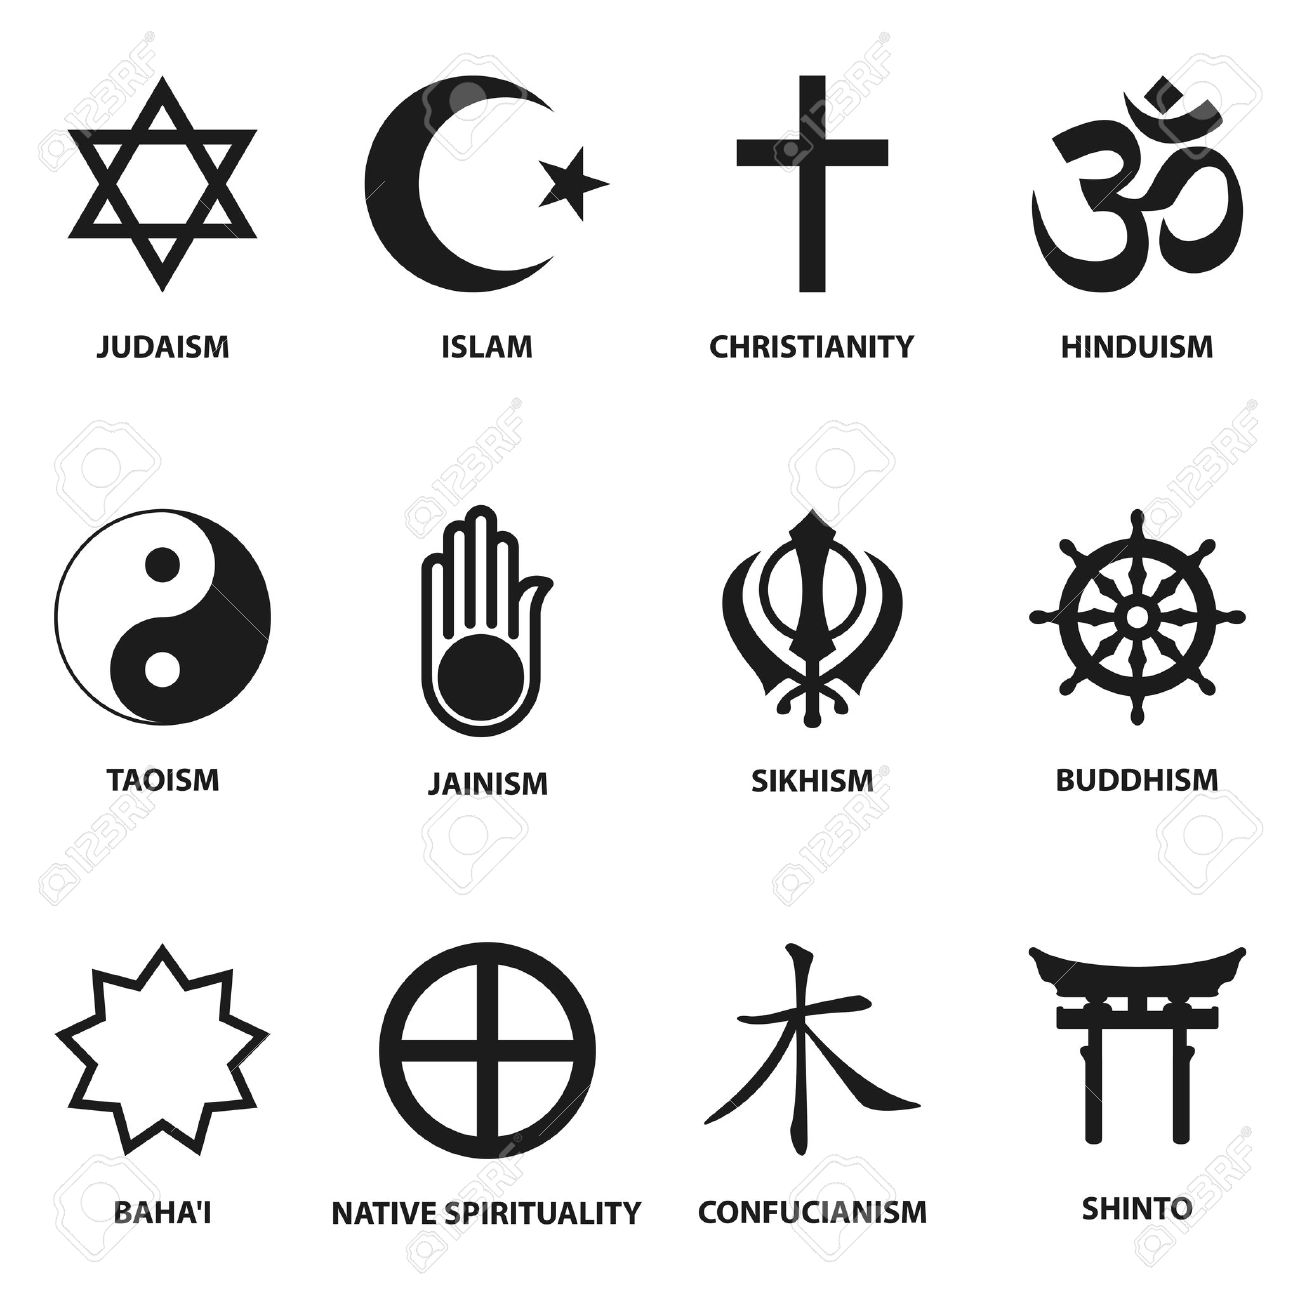 Religious symbols stock photos royalty free business images world religious sign and symbols collection isolated on white background vector illustration buycottarizona